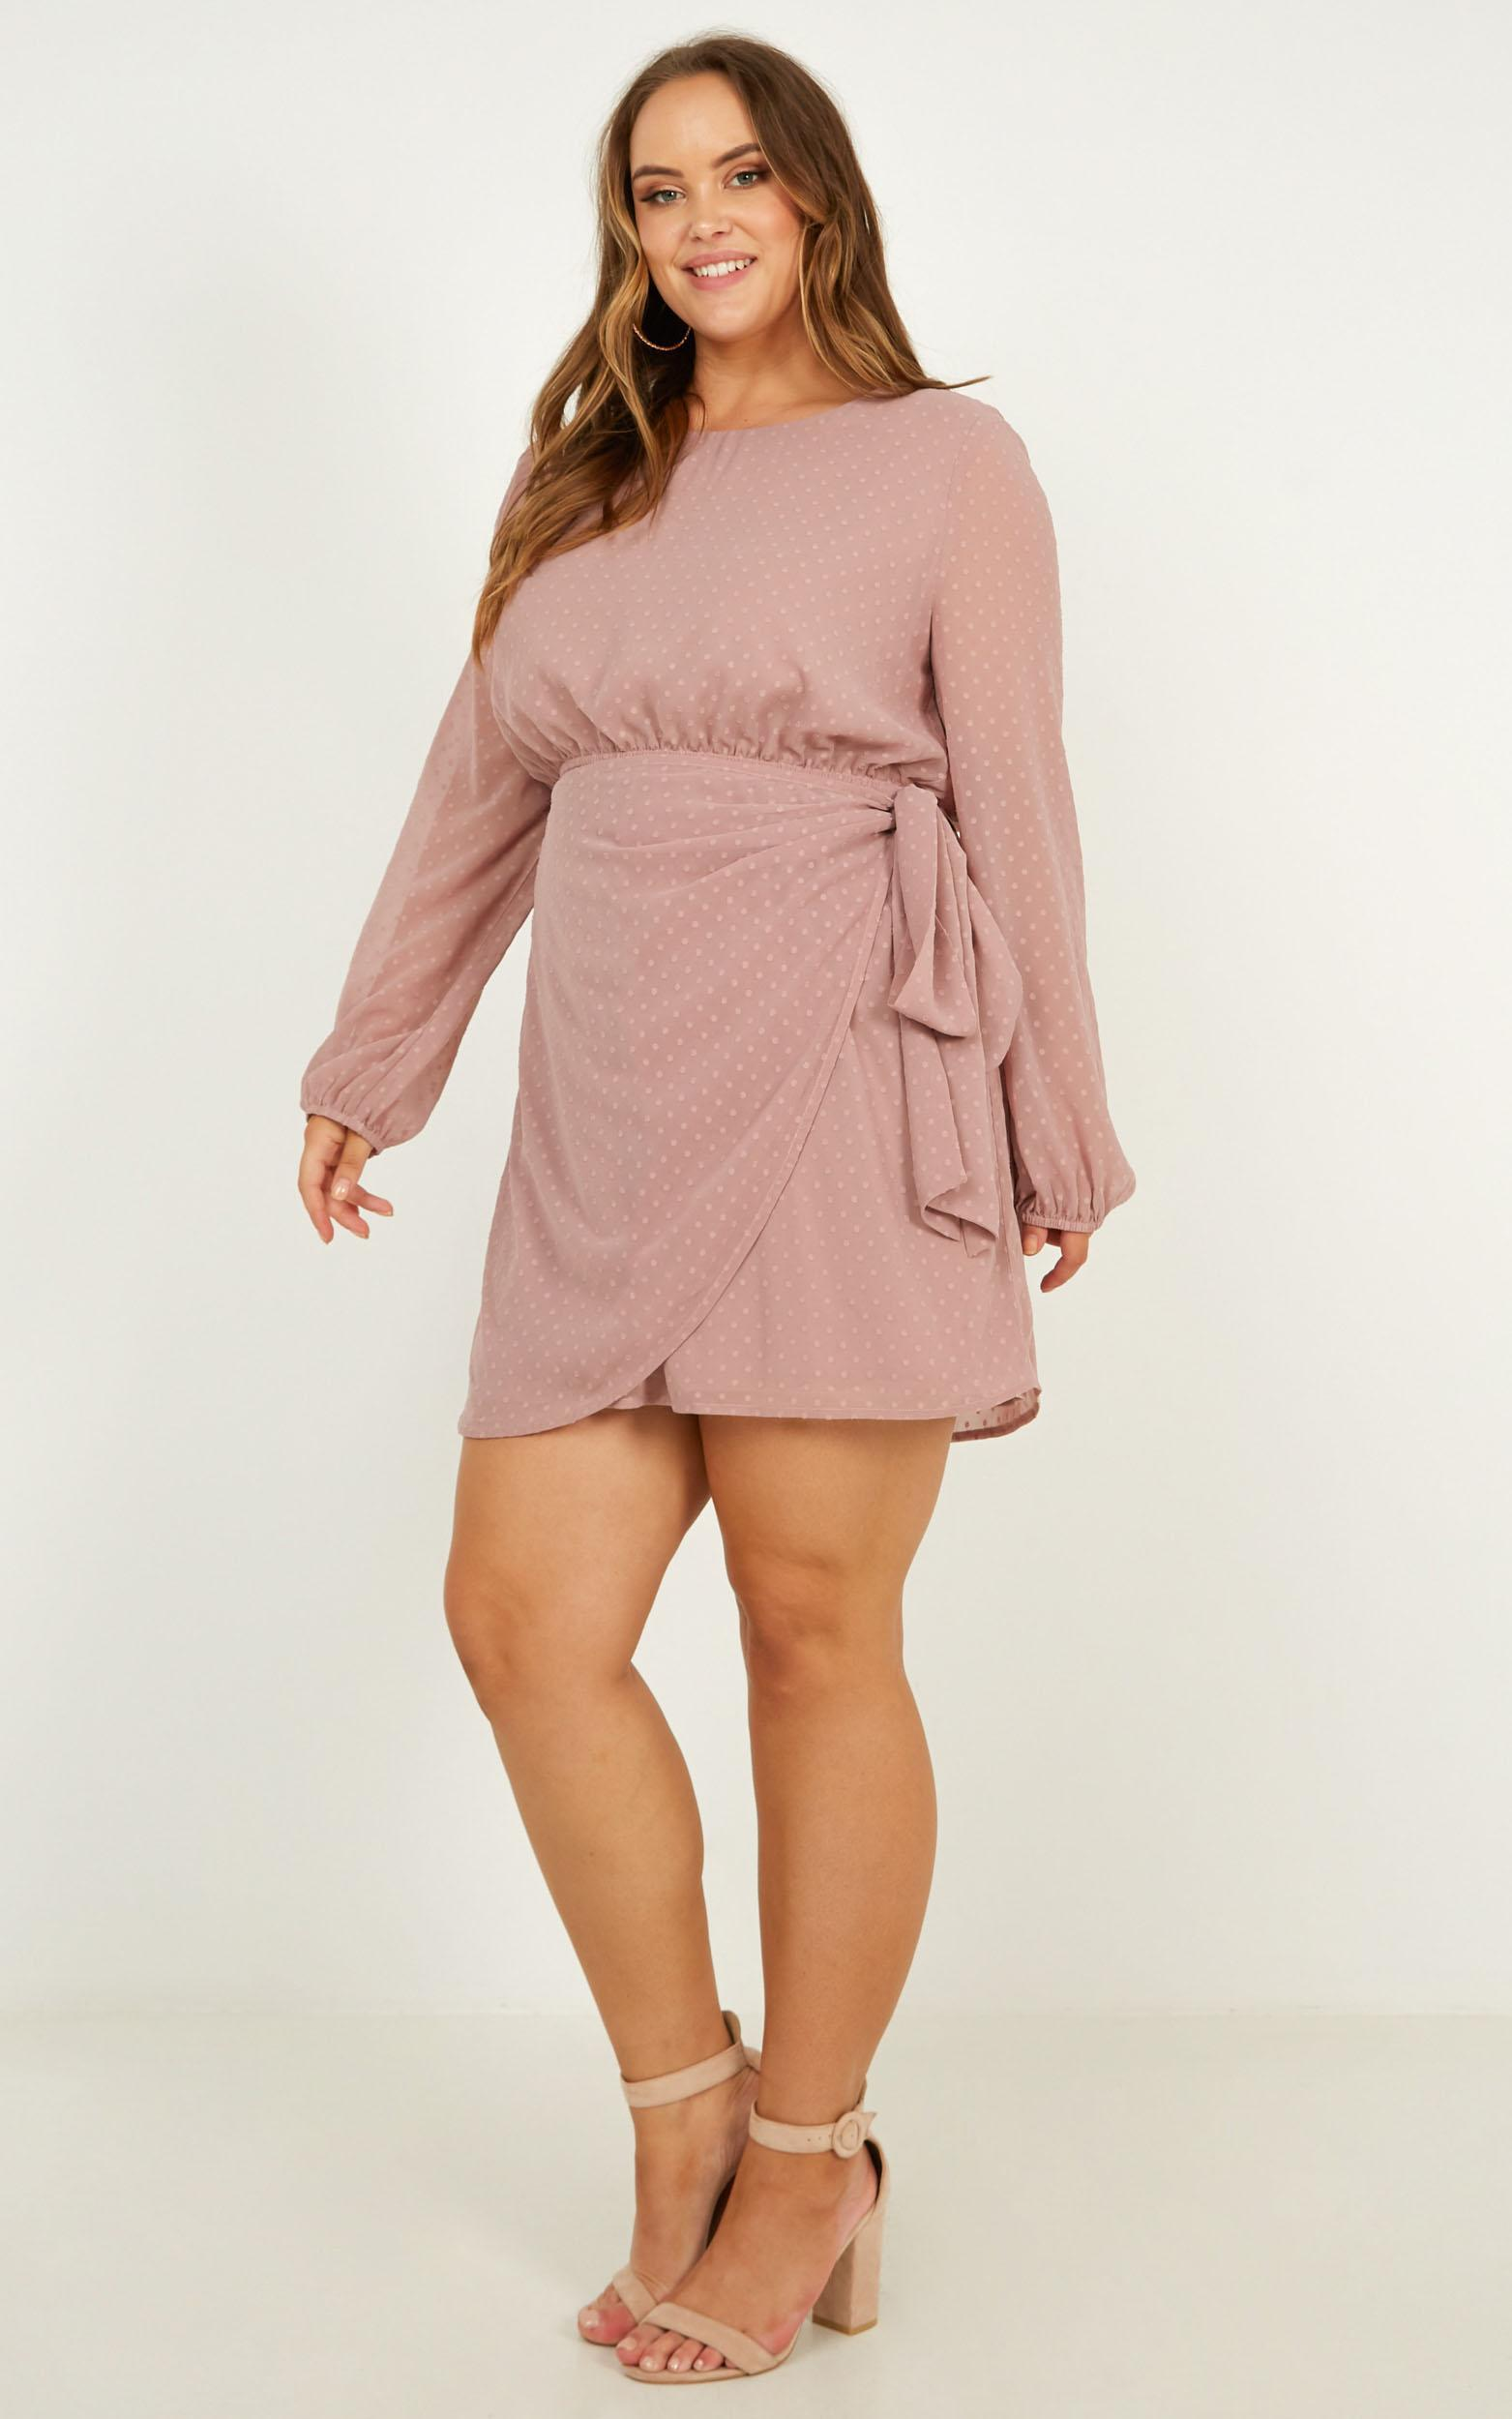 Lilliana dress in blush - 20 (XXXXL), Blush, hi-res image number null